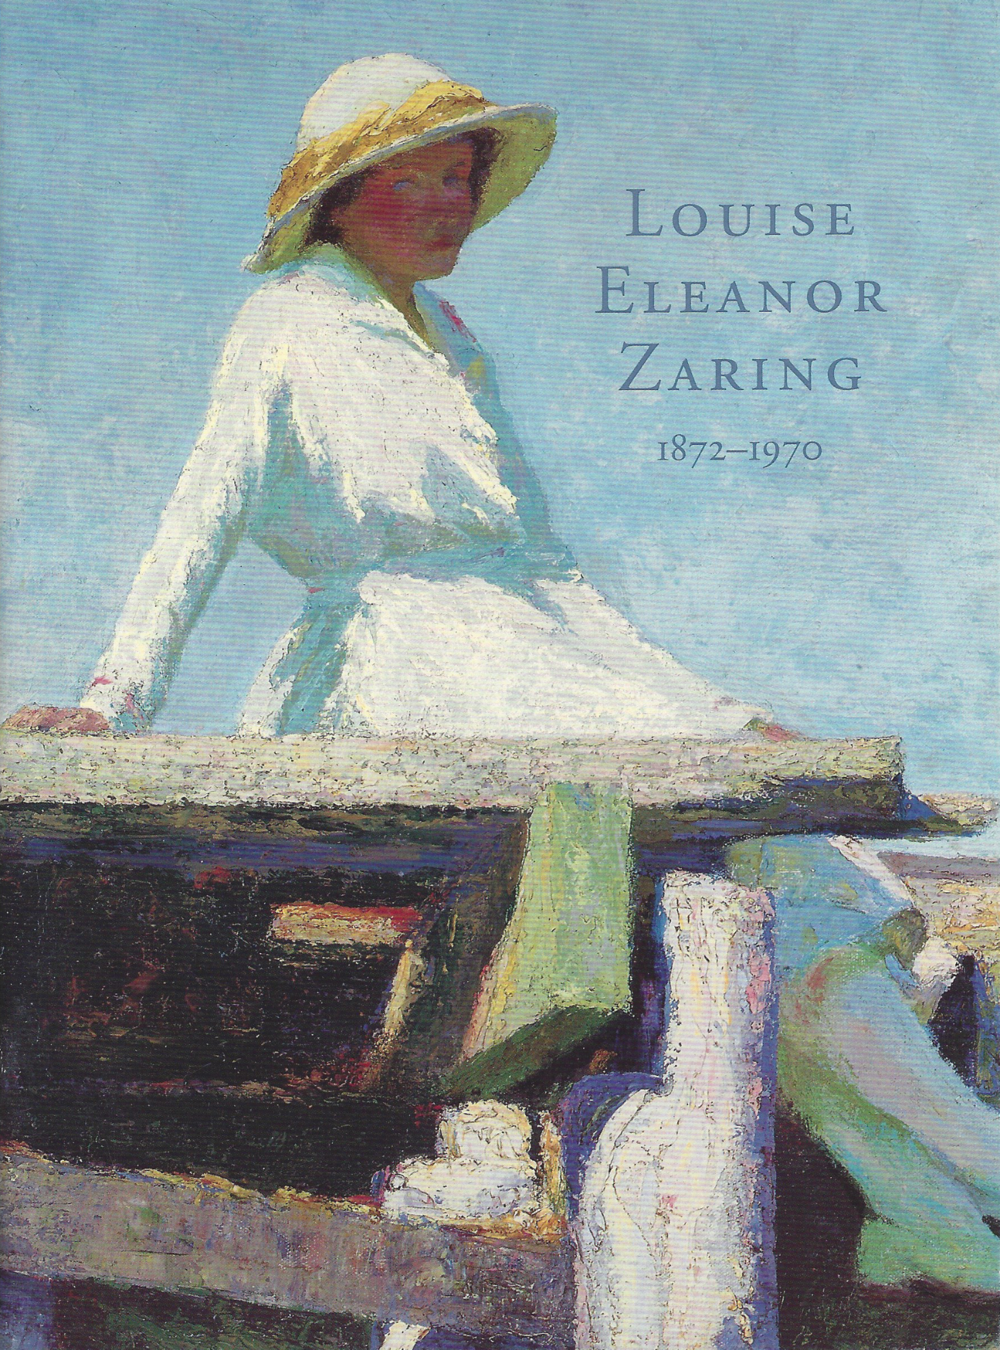 Louise Eleanor Zaring Exhibition Catalogue